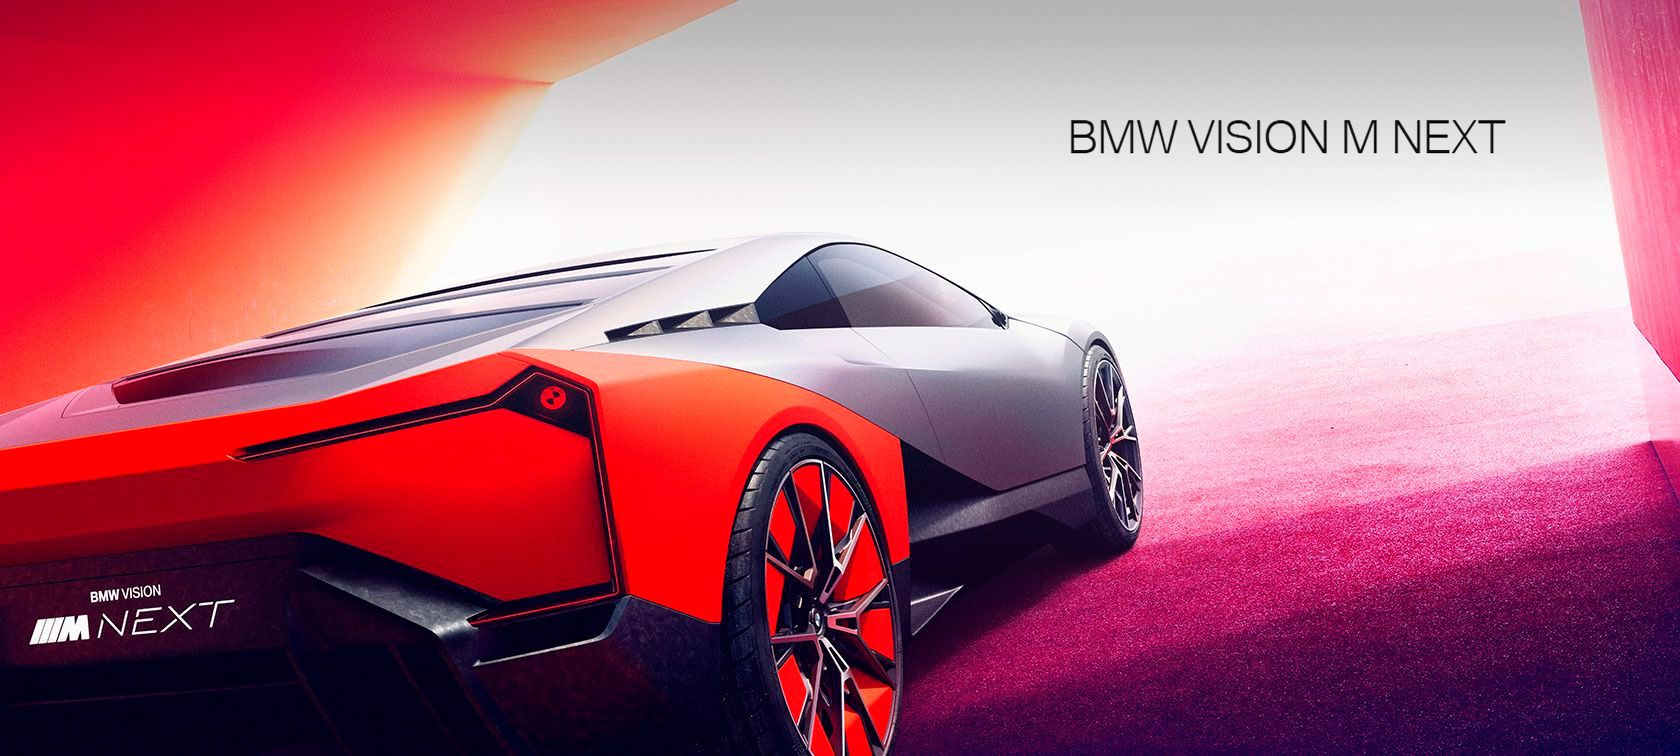 BMW VISION TEXT